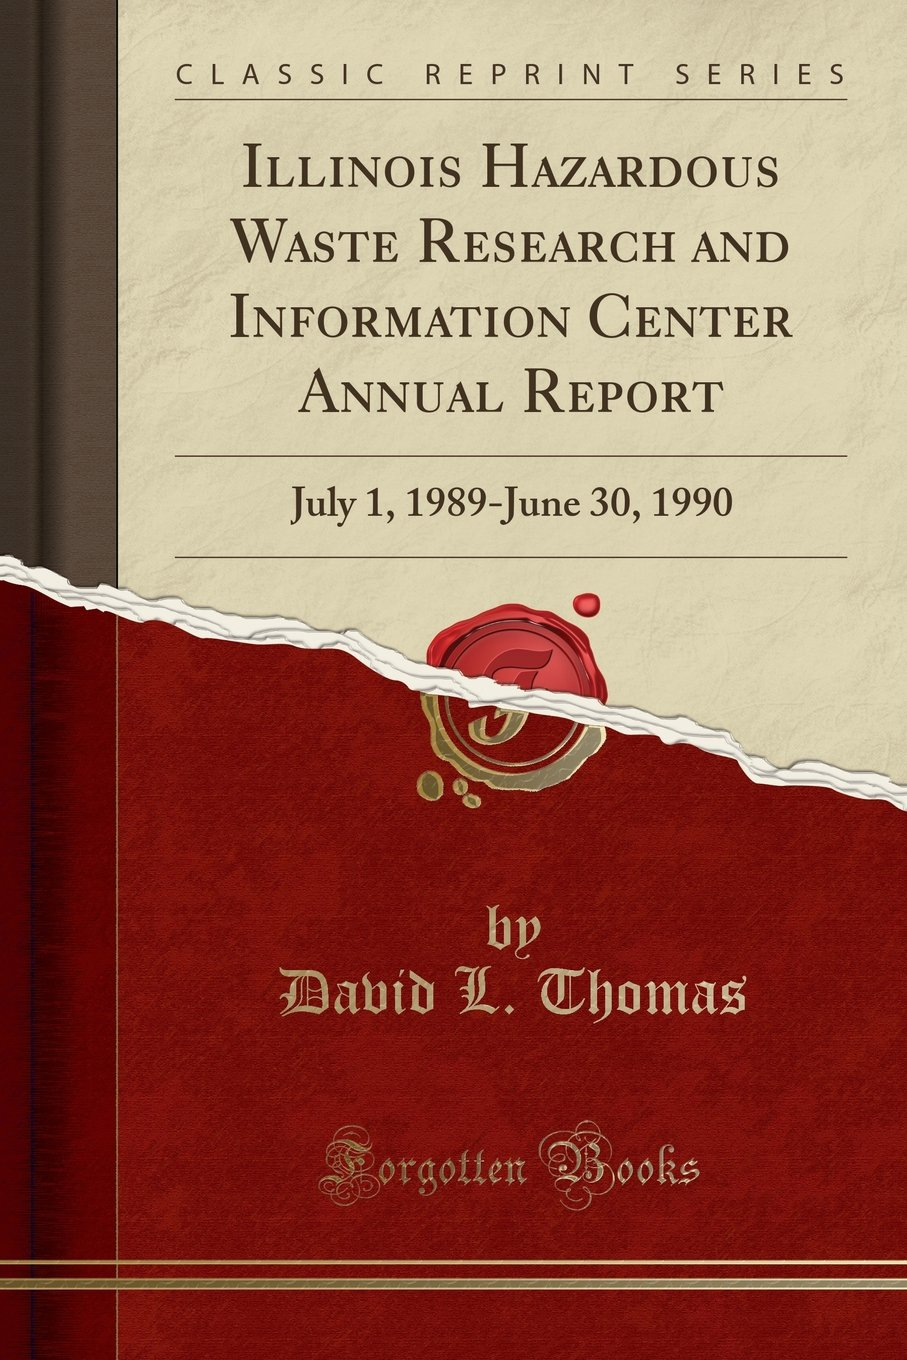 Read Online Illinois Hazardous Waste Research and Information Center Annual Report: July 1, 1989-June 30, 1990 (Classic Reprint) PDF